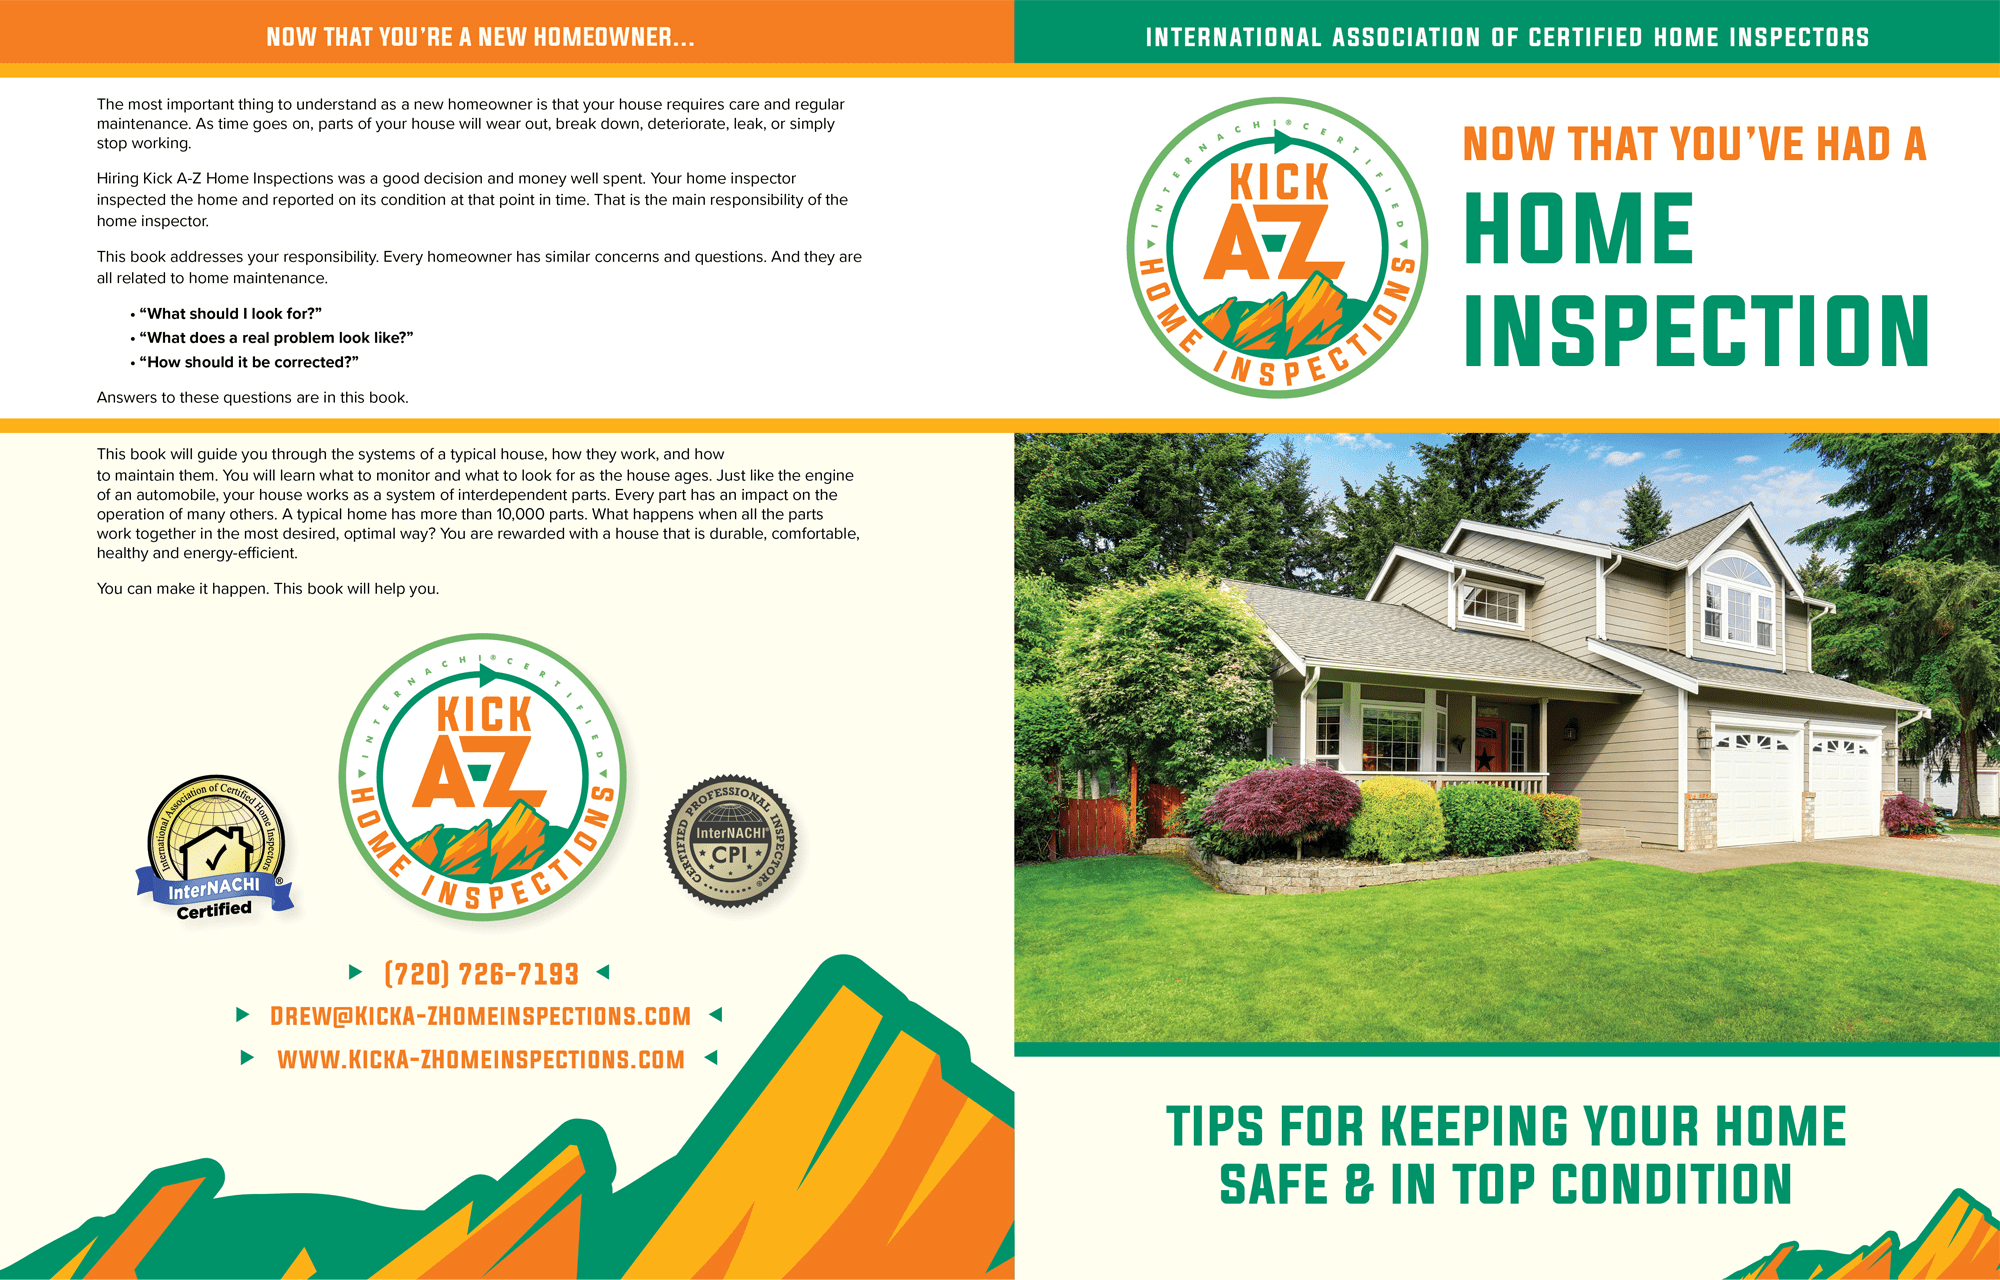 A-Z Home Inspections book cover.